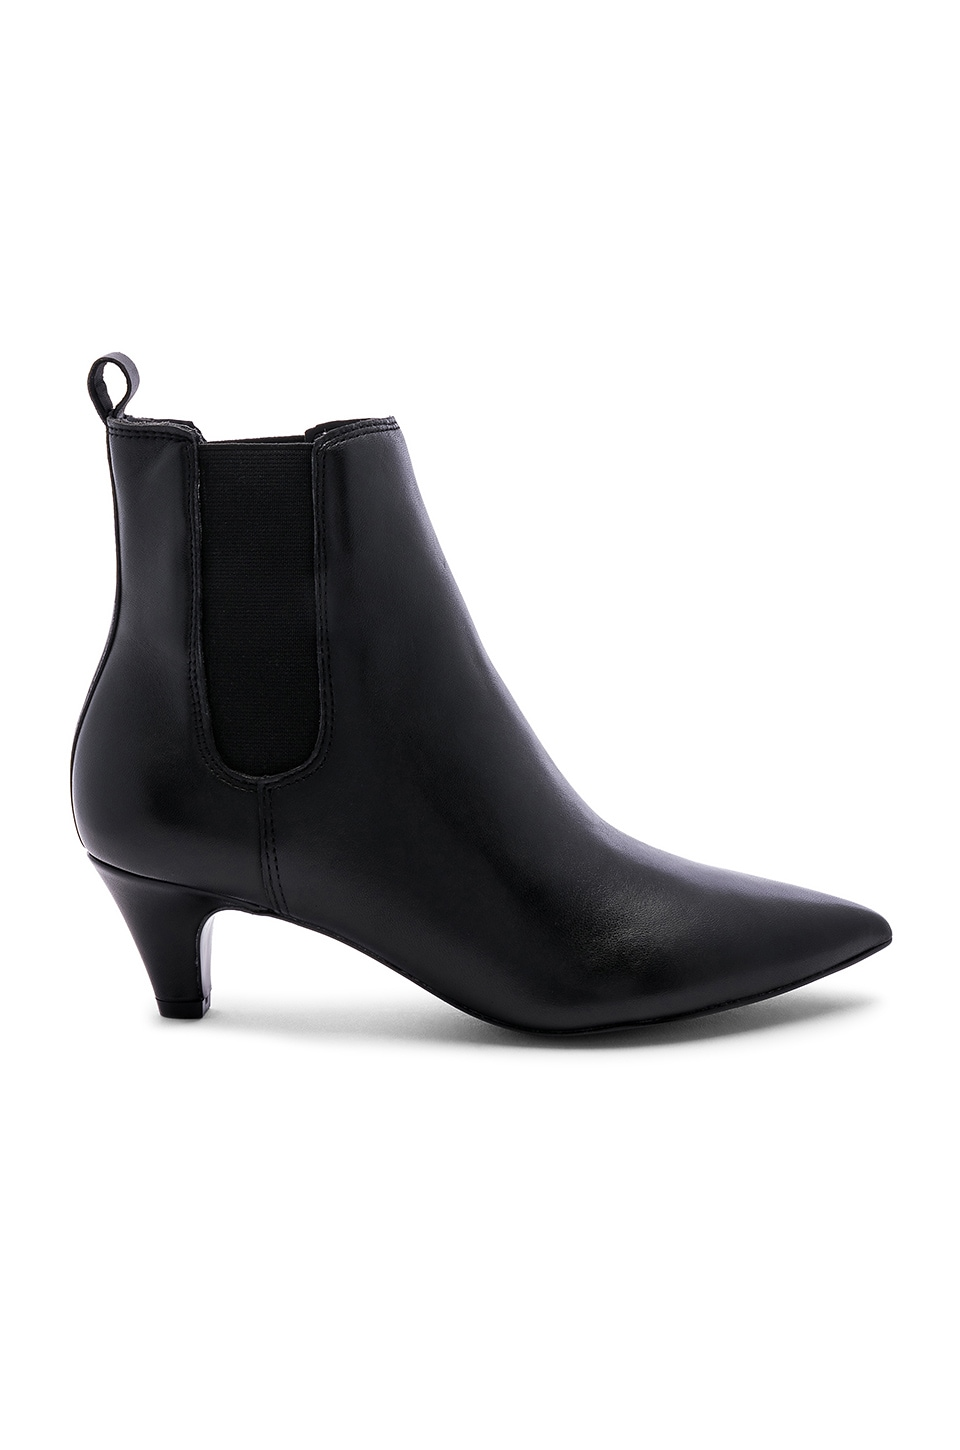 KENDALL + KYLIE Pierce Bootie in Black